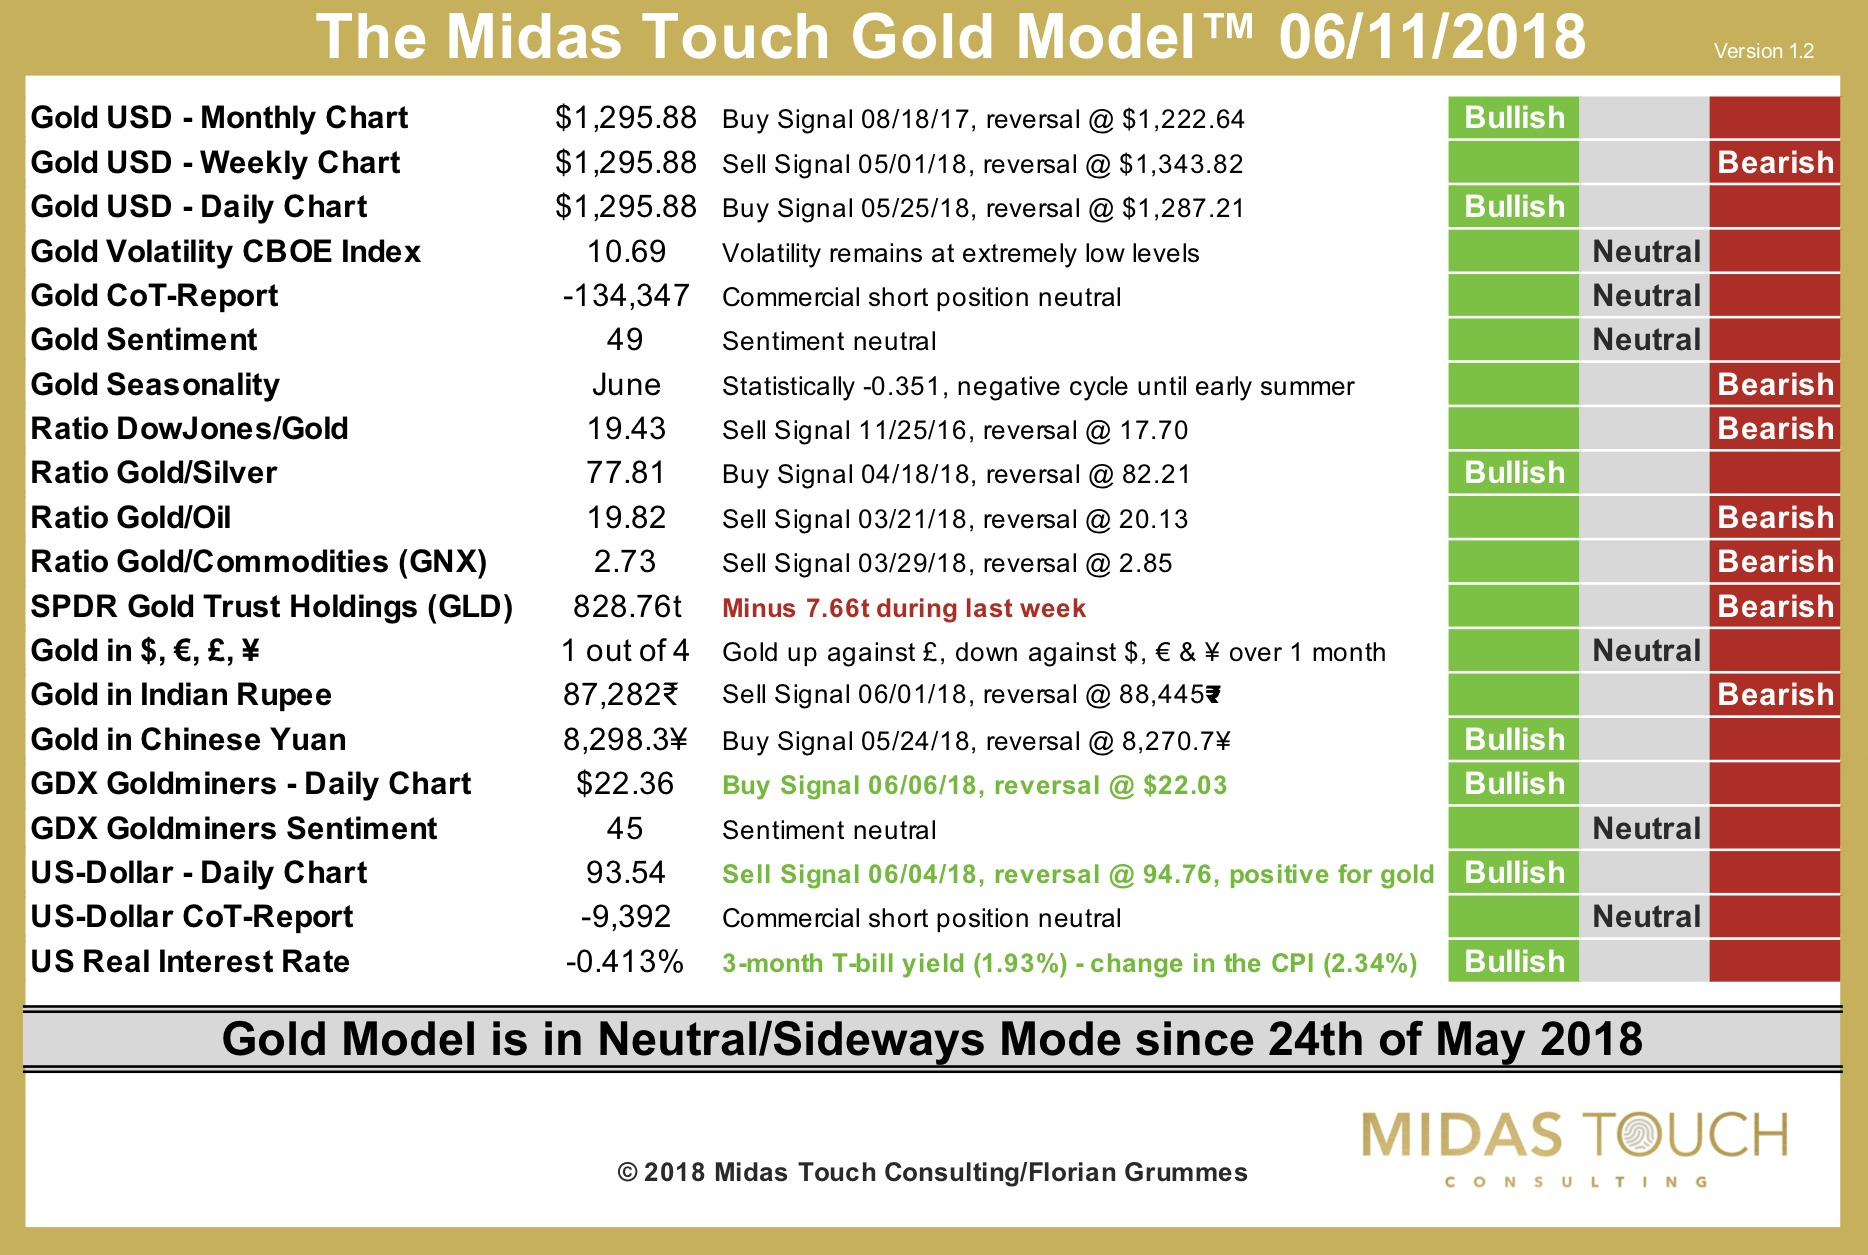 The Midas Touch Gold Model™ as of June 11th, 2018